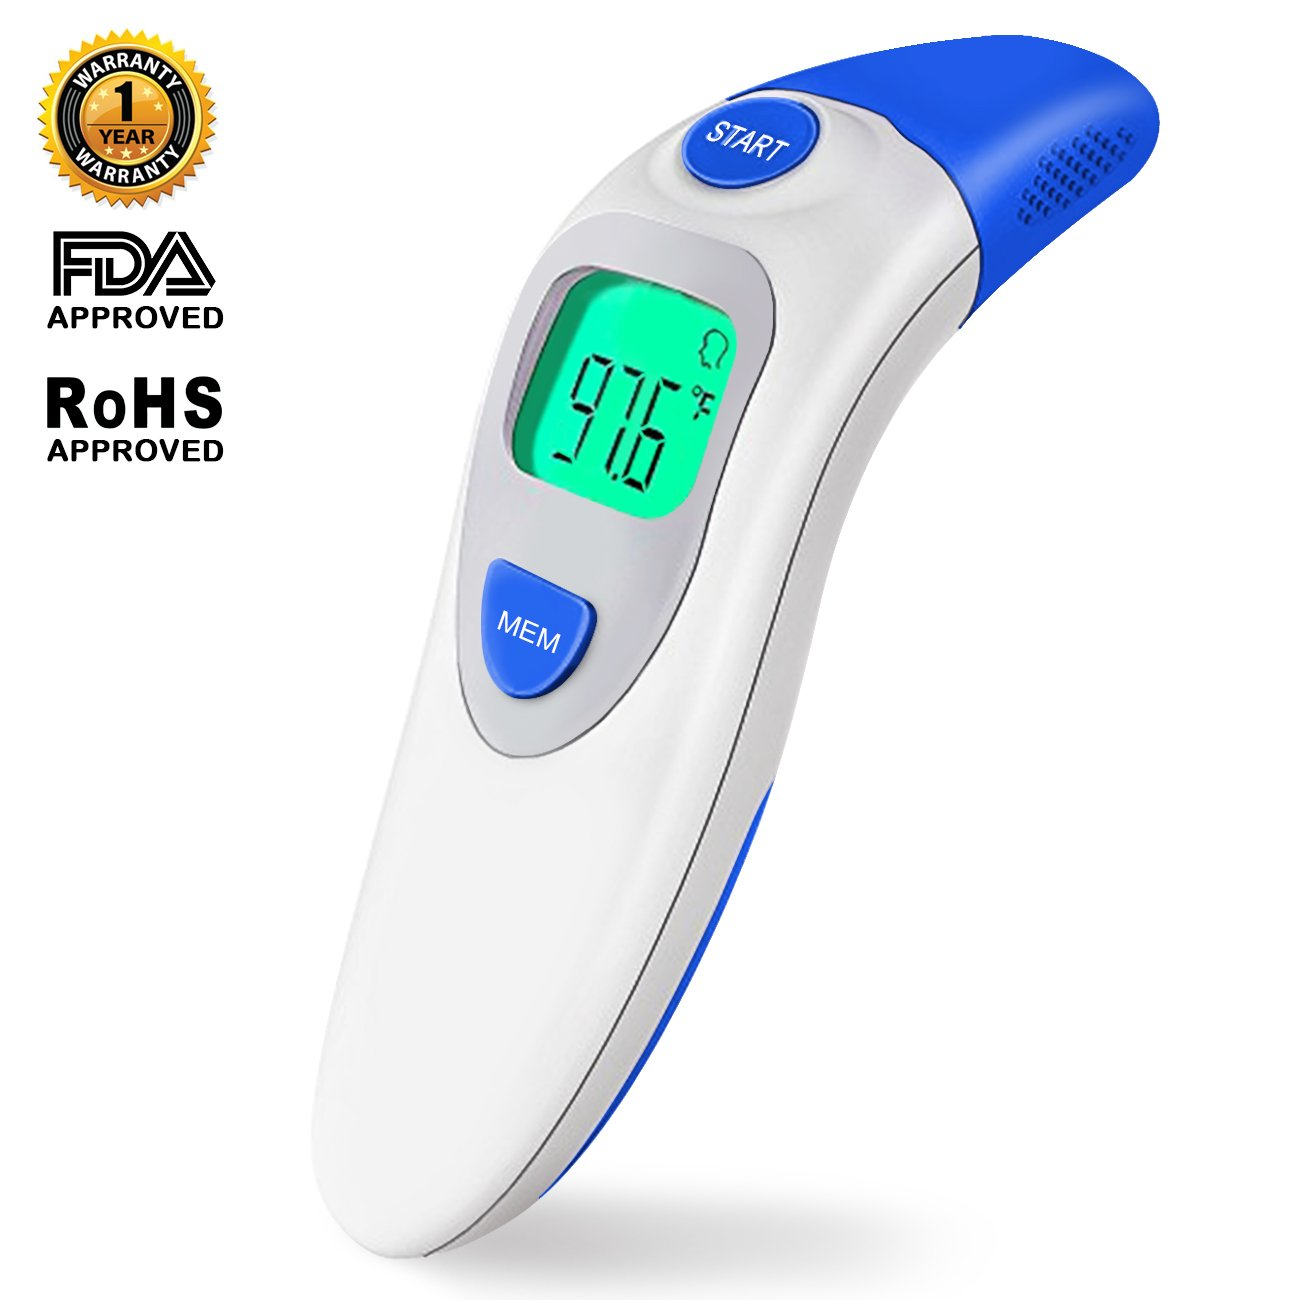 Thermometer for Fever Digital Medical Infrared Forehead and Ear Thermometer Professional Suitable for Baby, Infants, Toddlers, Adults, Objects and Ambient with More Accurate (Blue) by Ailicici